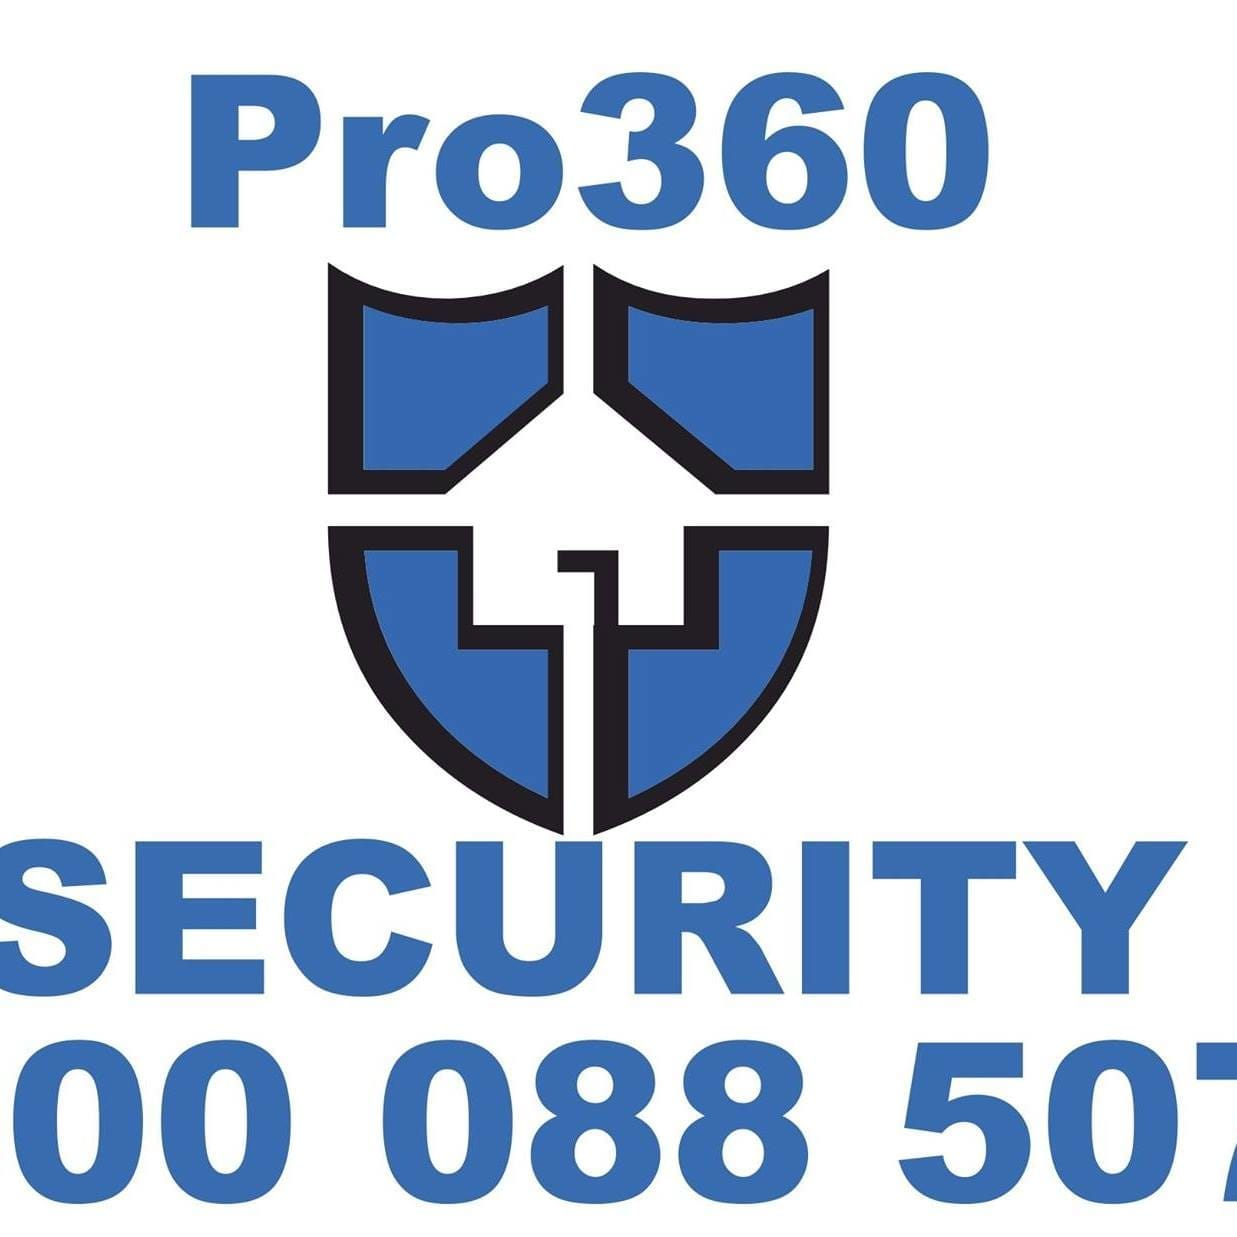 Pro360 Security